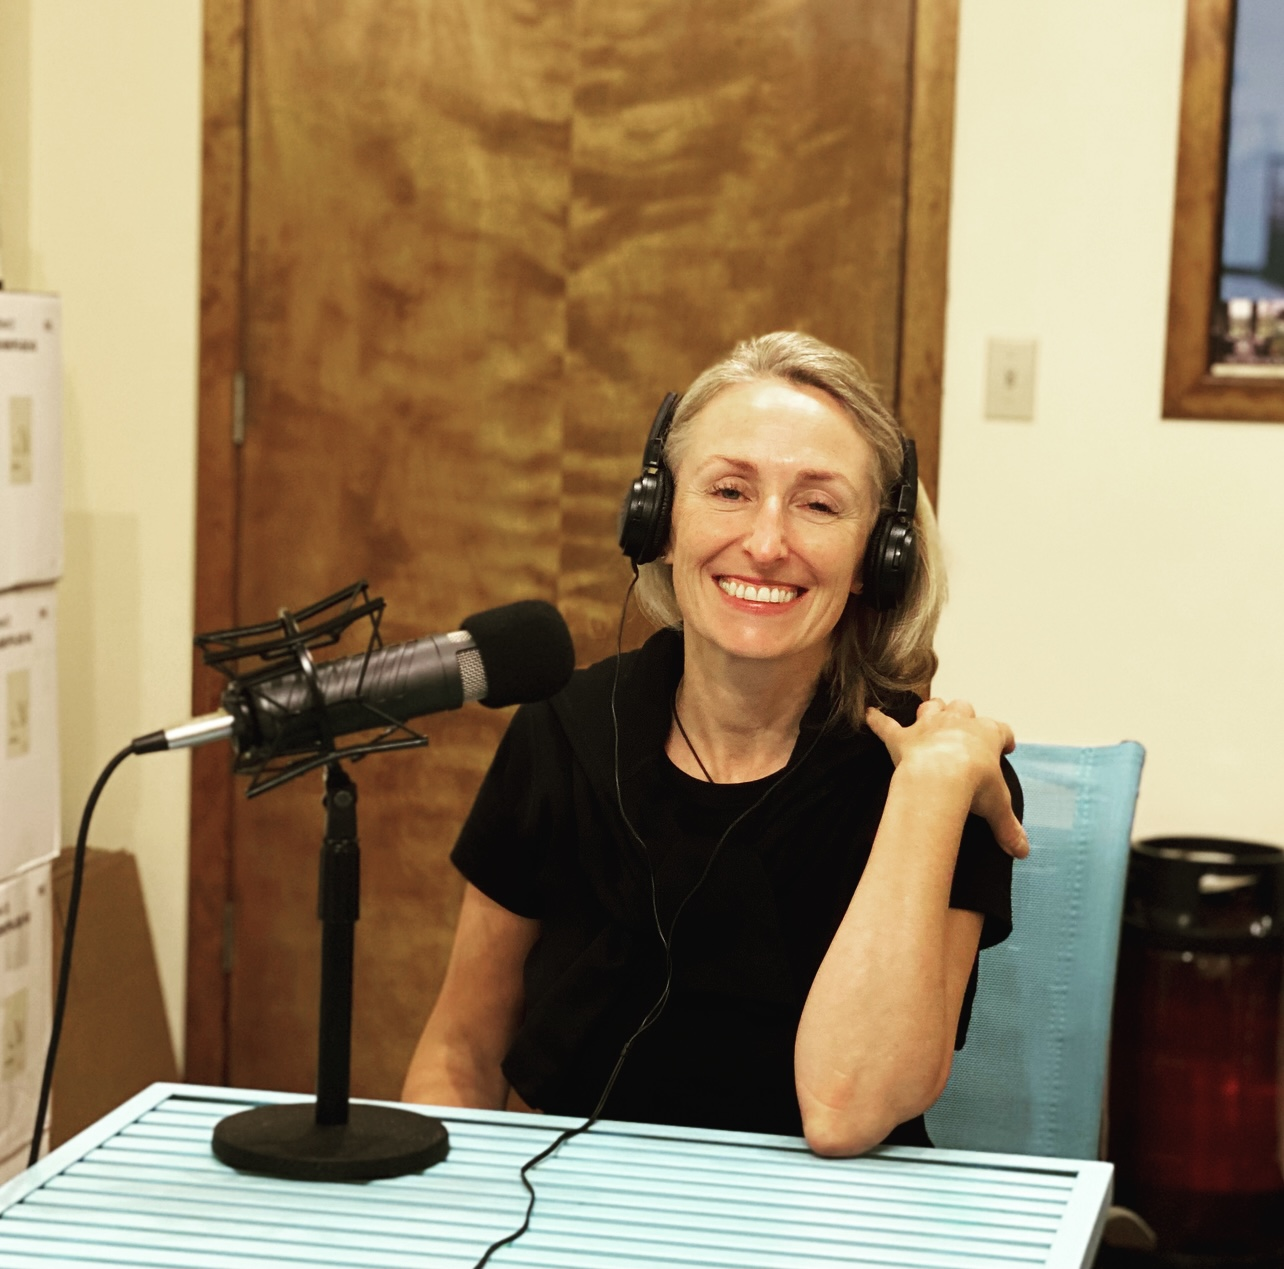 Pam Walden Willful Wine – Culinary Treasure Podcast Episode 83 by Steven Shomler